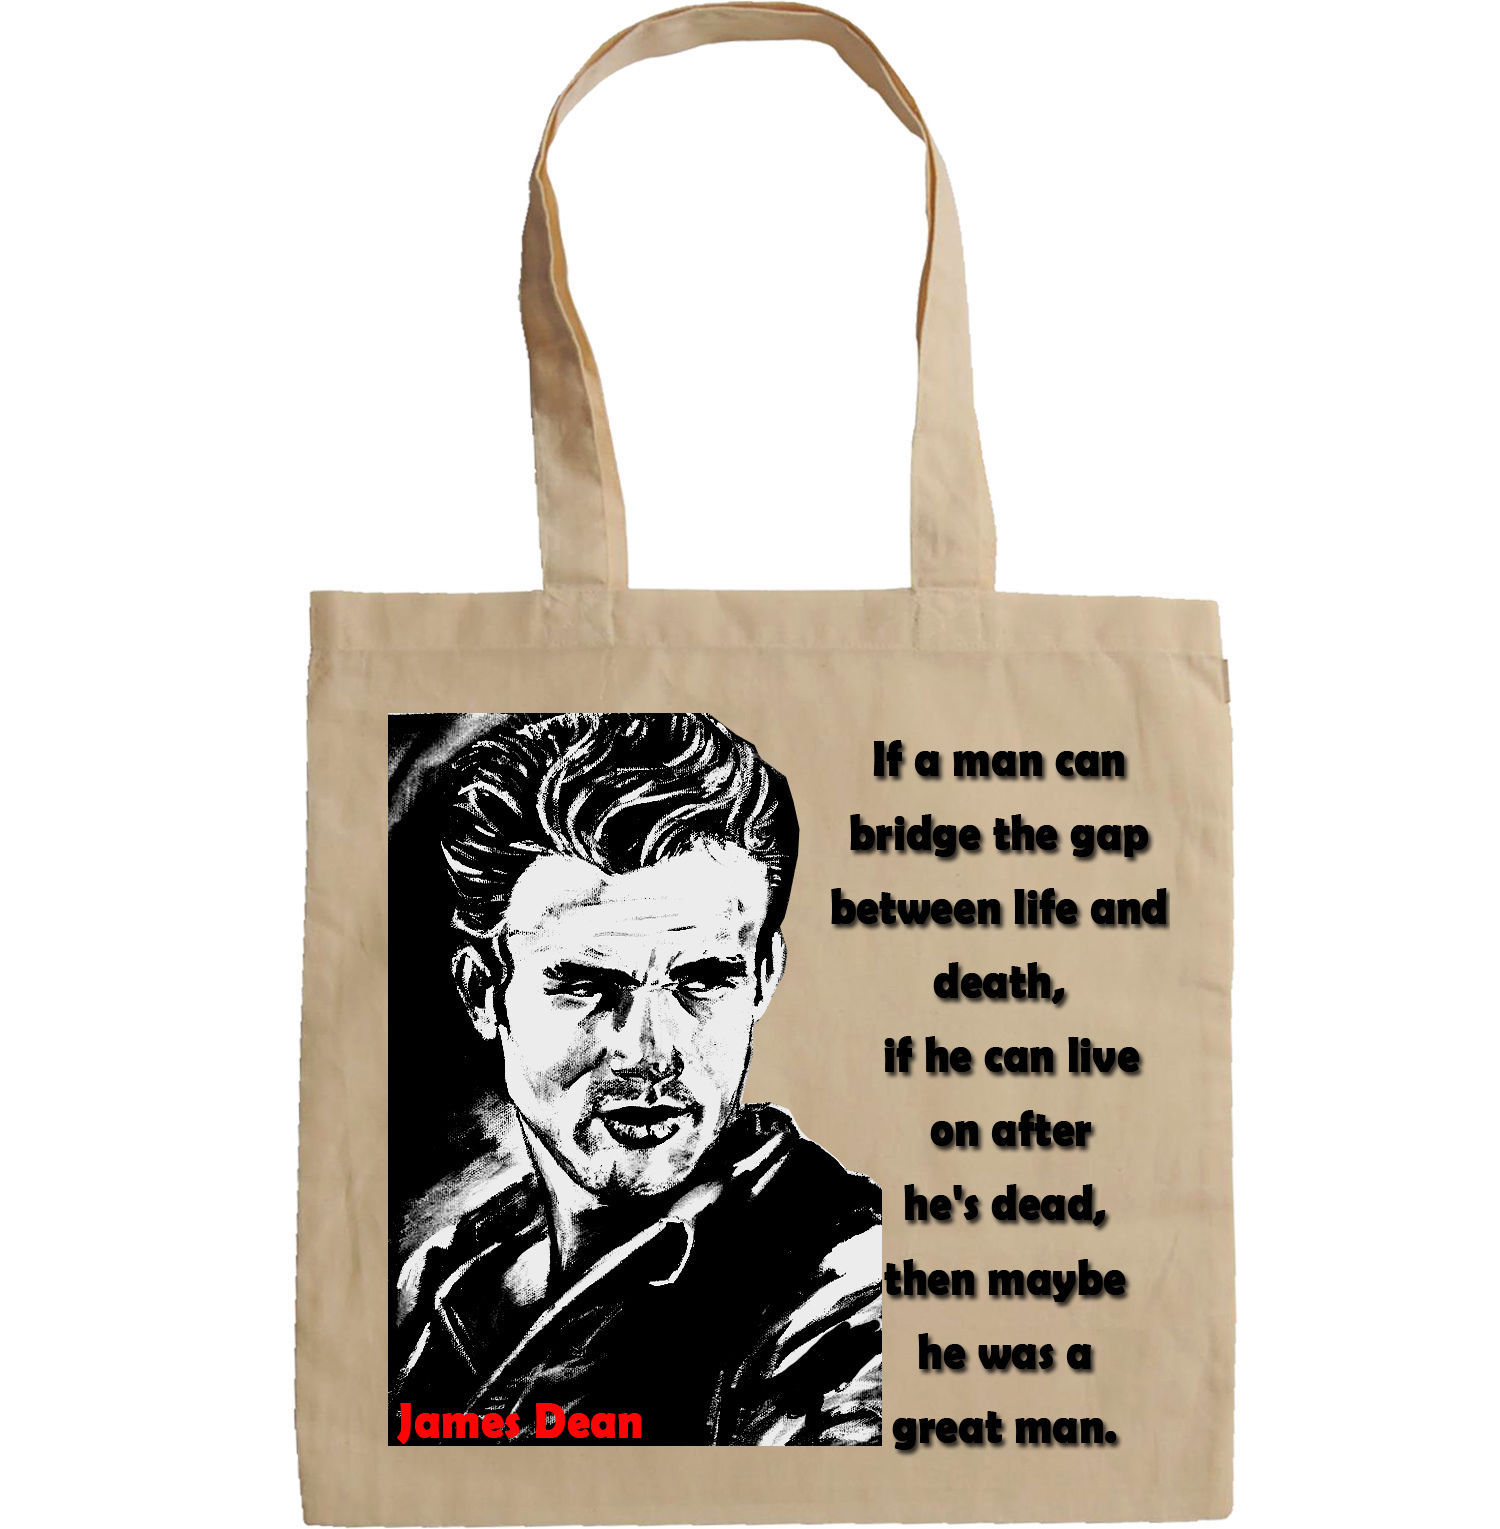 JAMES DEAN QUOTE - NEW AMAZING GRAPHIC HAND BAG/TOTE BAG